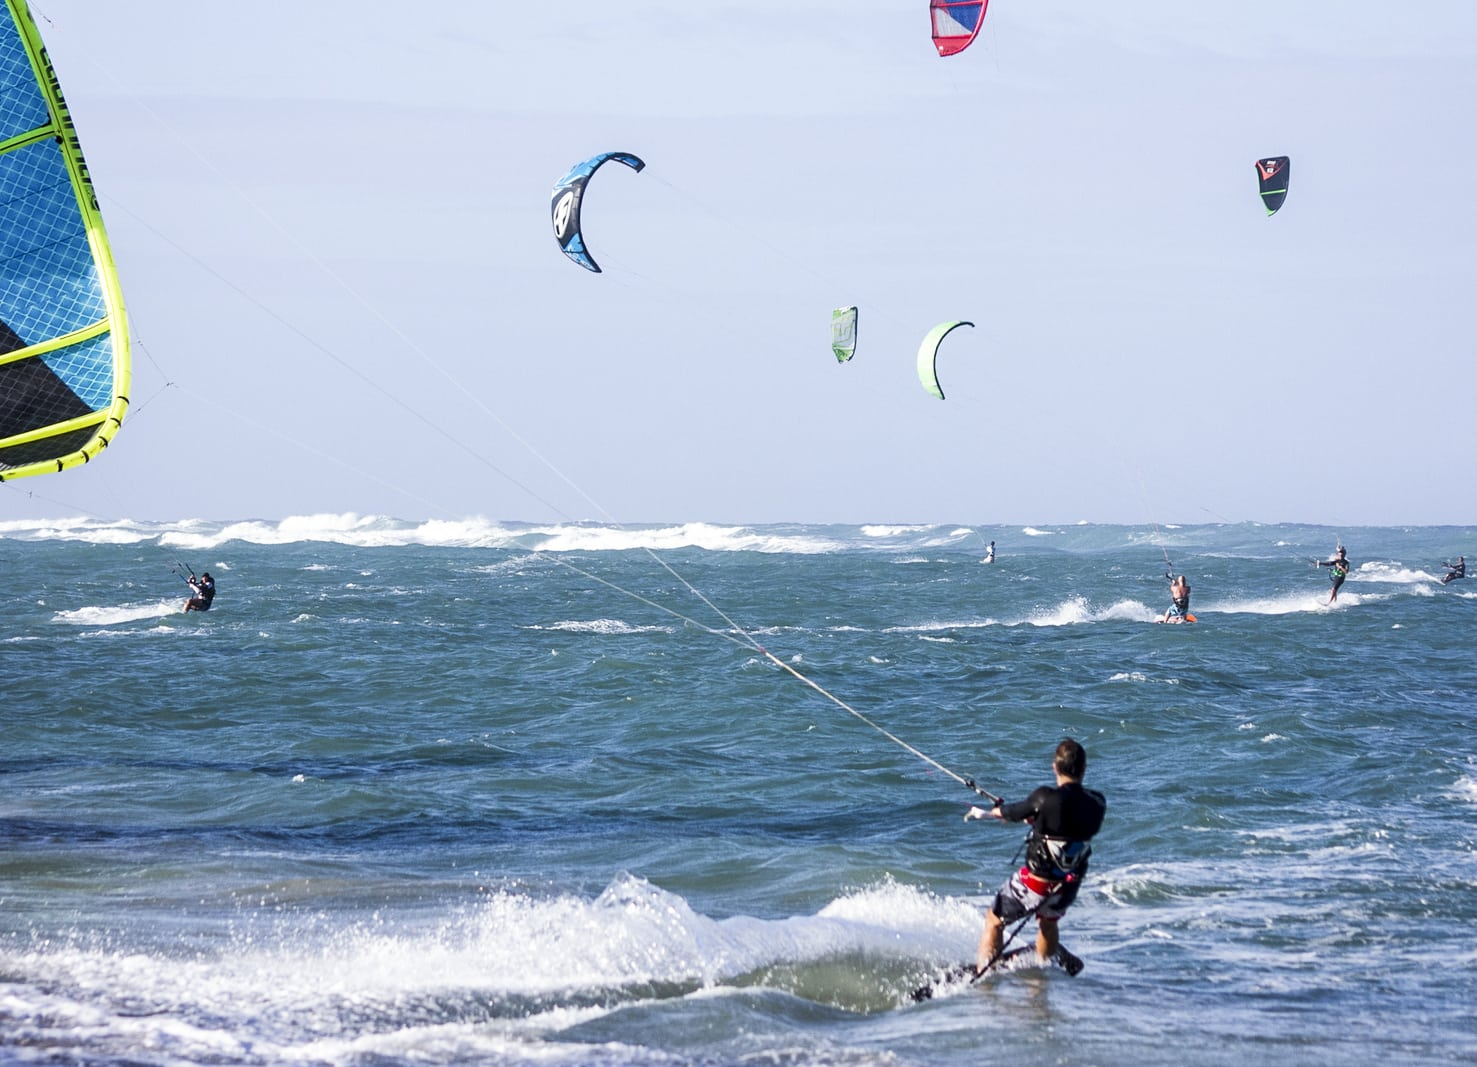 Crossfit and kiteboarding